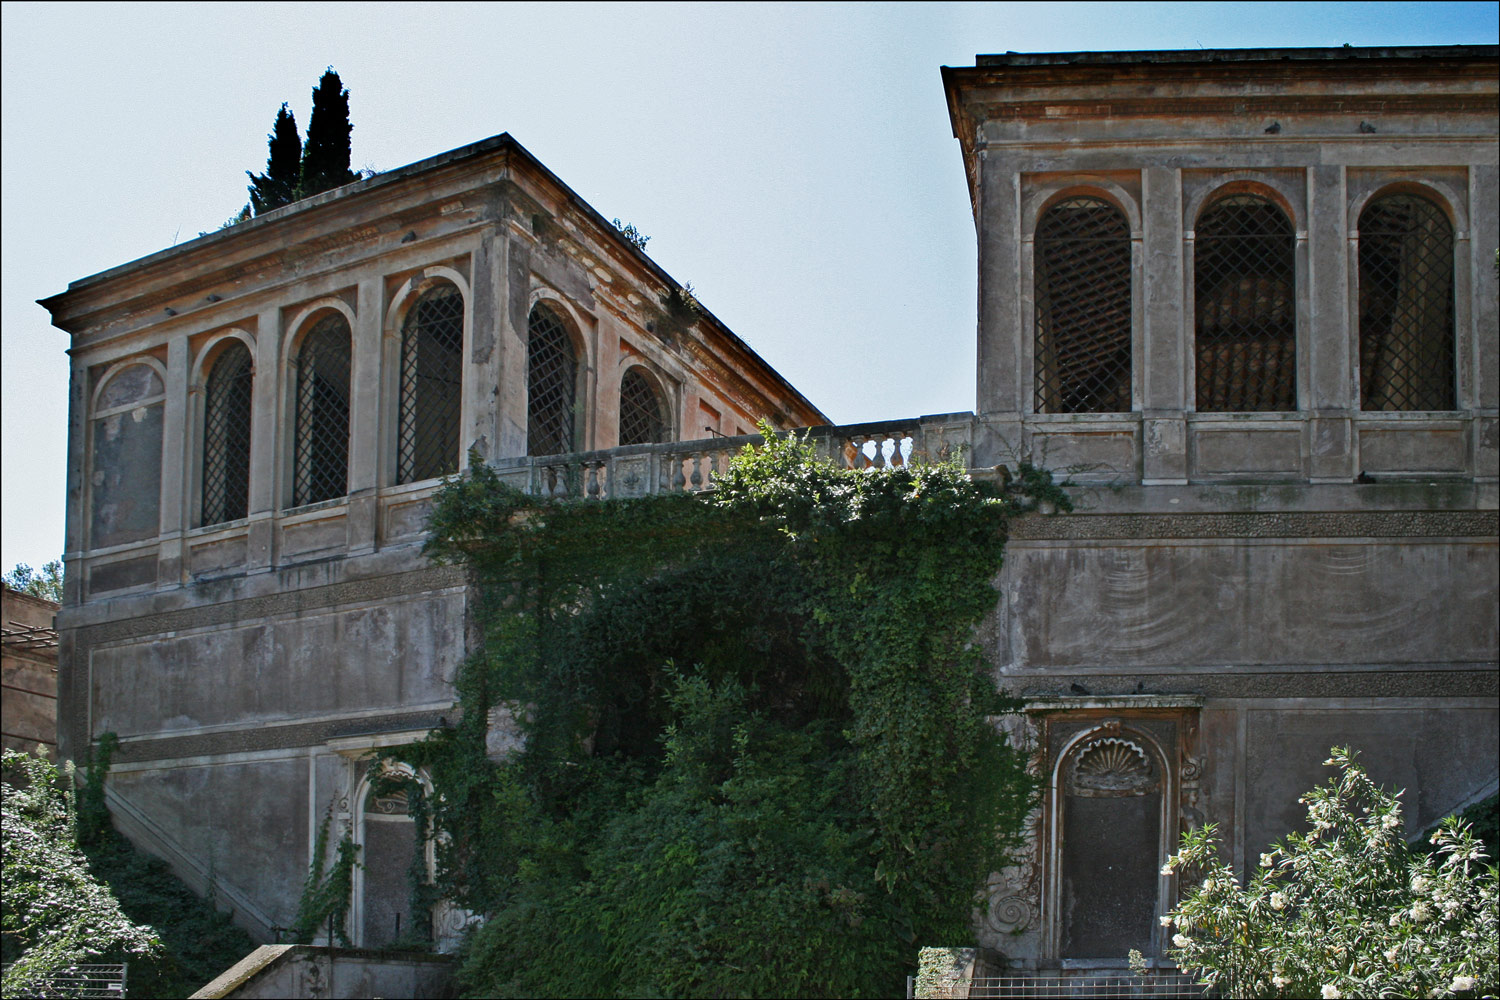 The Aviaries of the Farnese Gardens